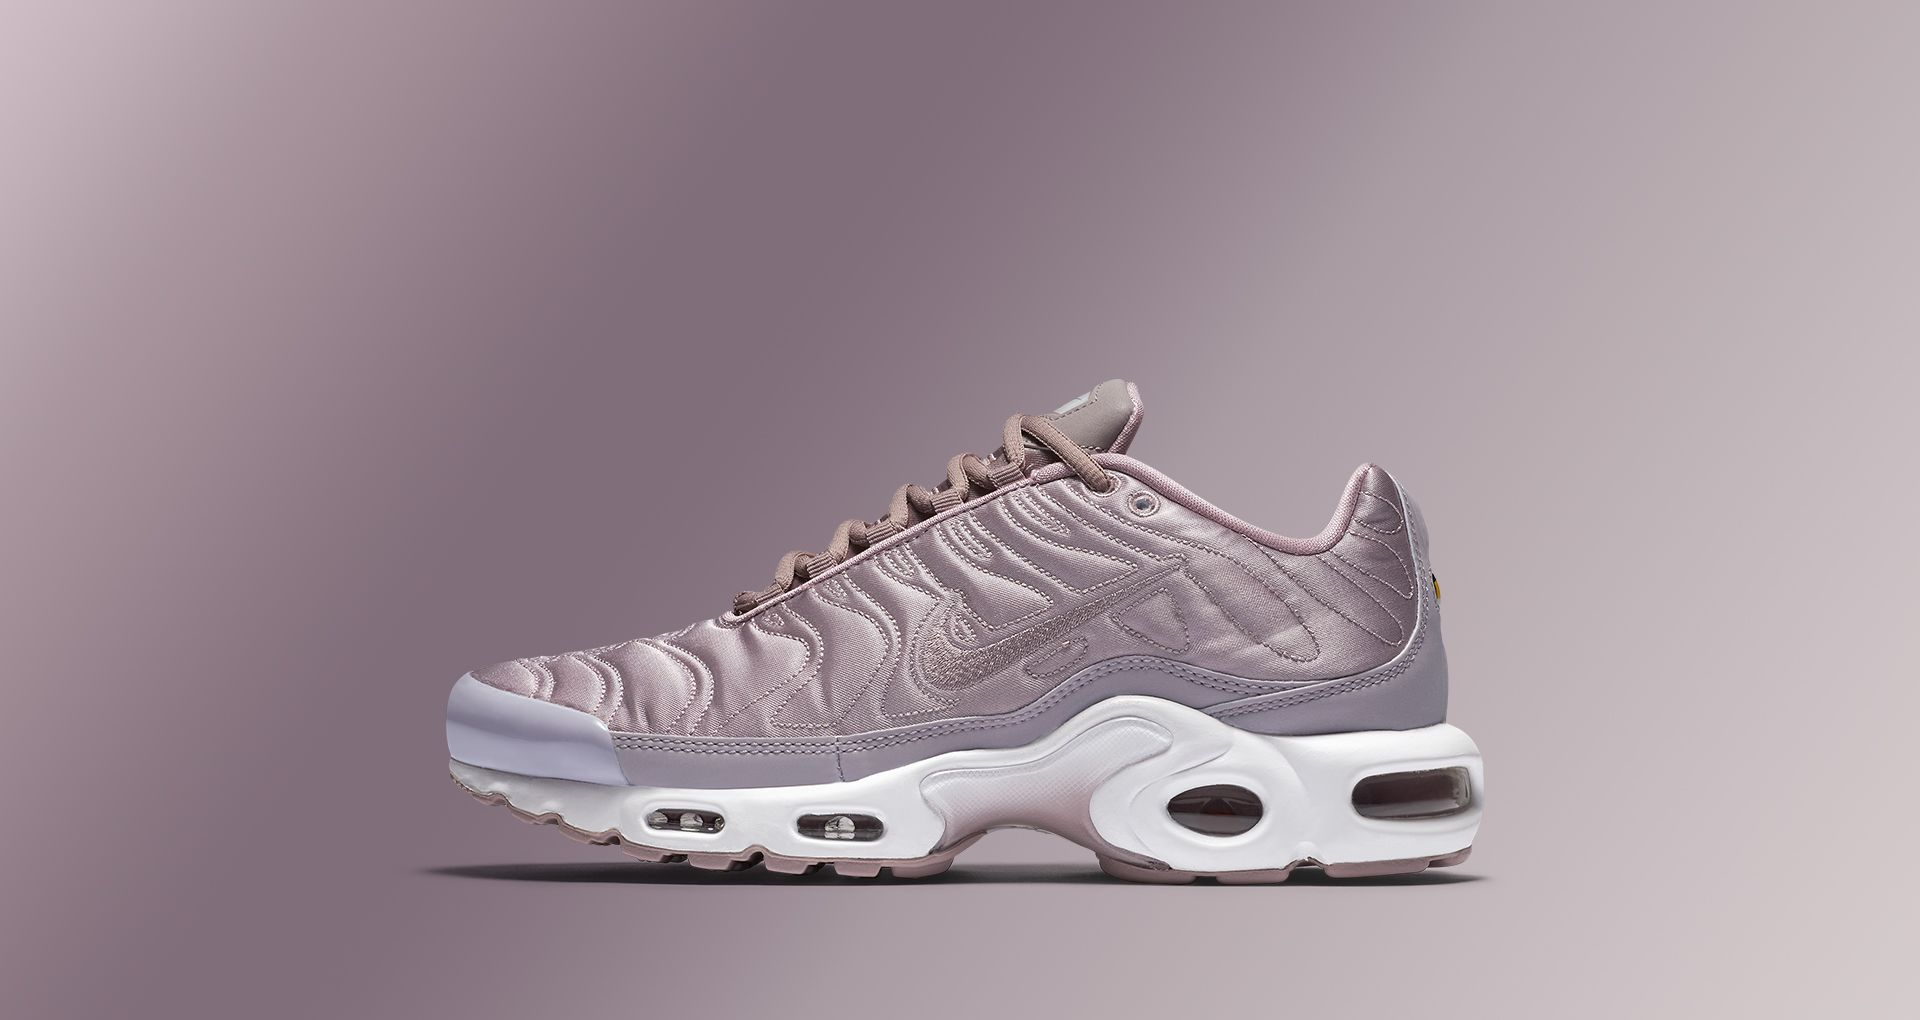 quality design d5a70 56819 WMNS AIR MAX PLUS. SUMMER SATIN